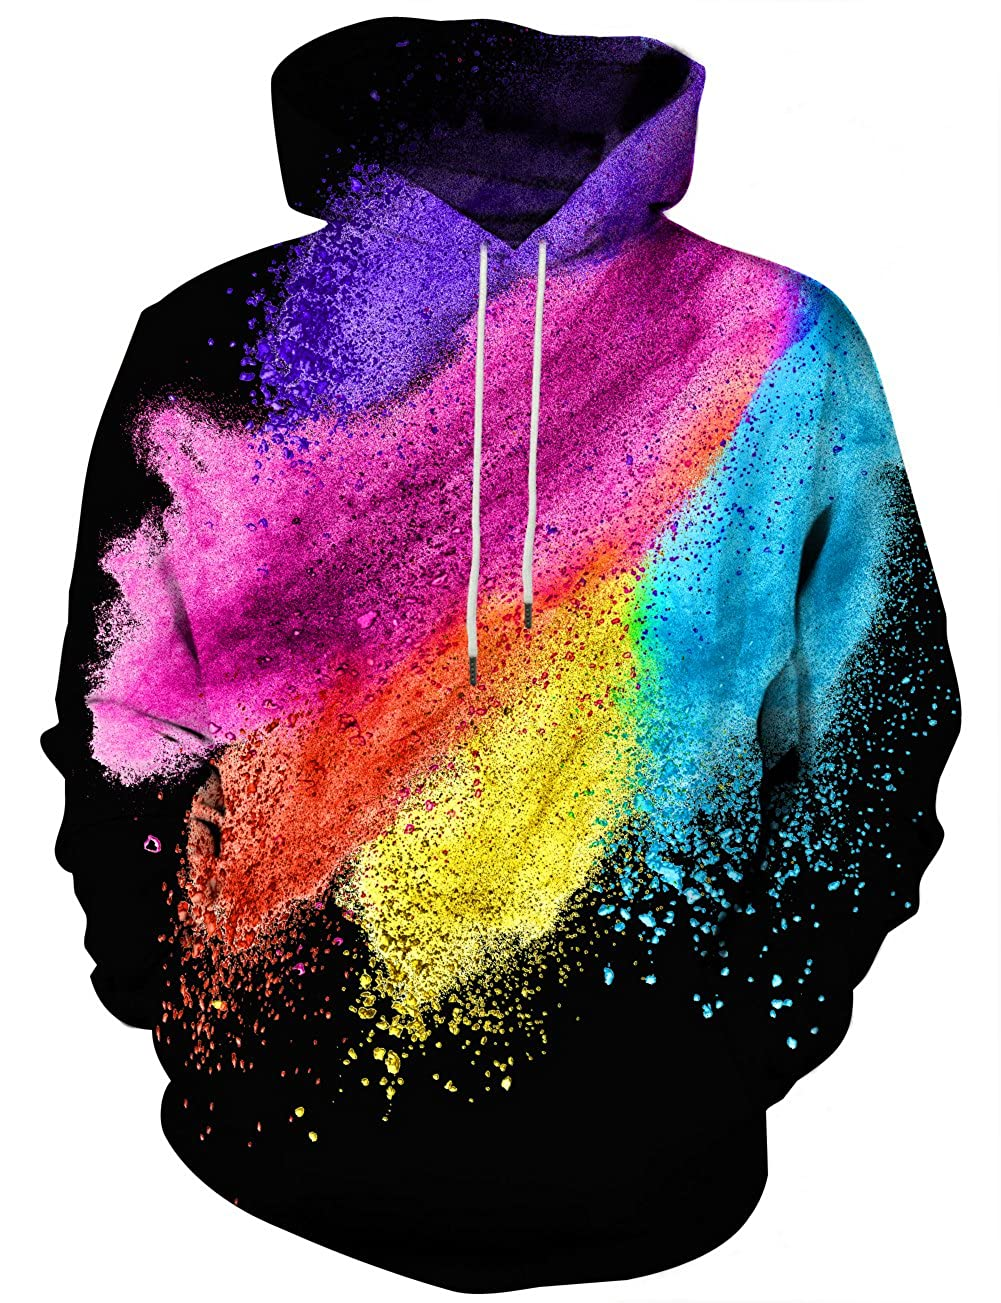 Hgvoetty Unisex Realistic 3D Printed Hoodies for Men Women Cool Graphic Hooded Sweatshirt with Pockets for Men Women